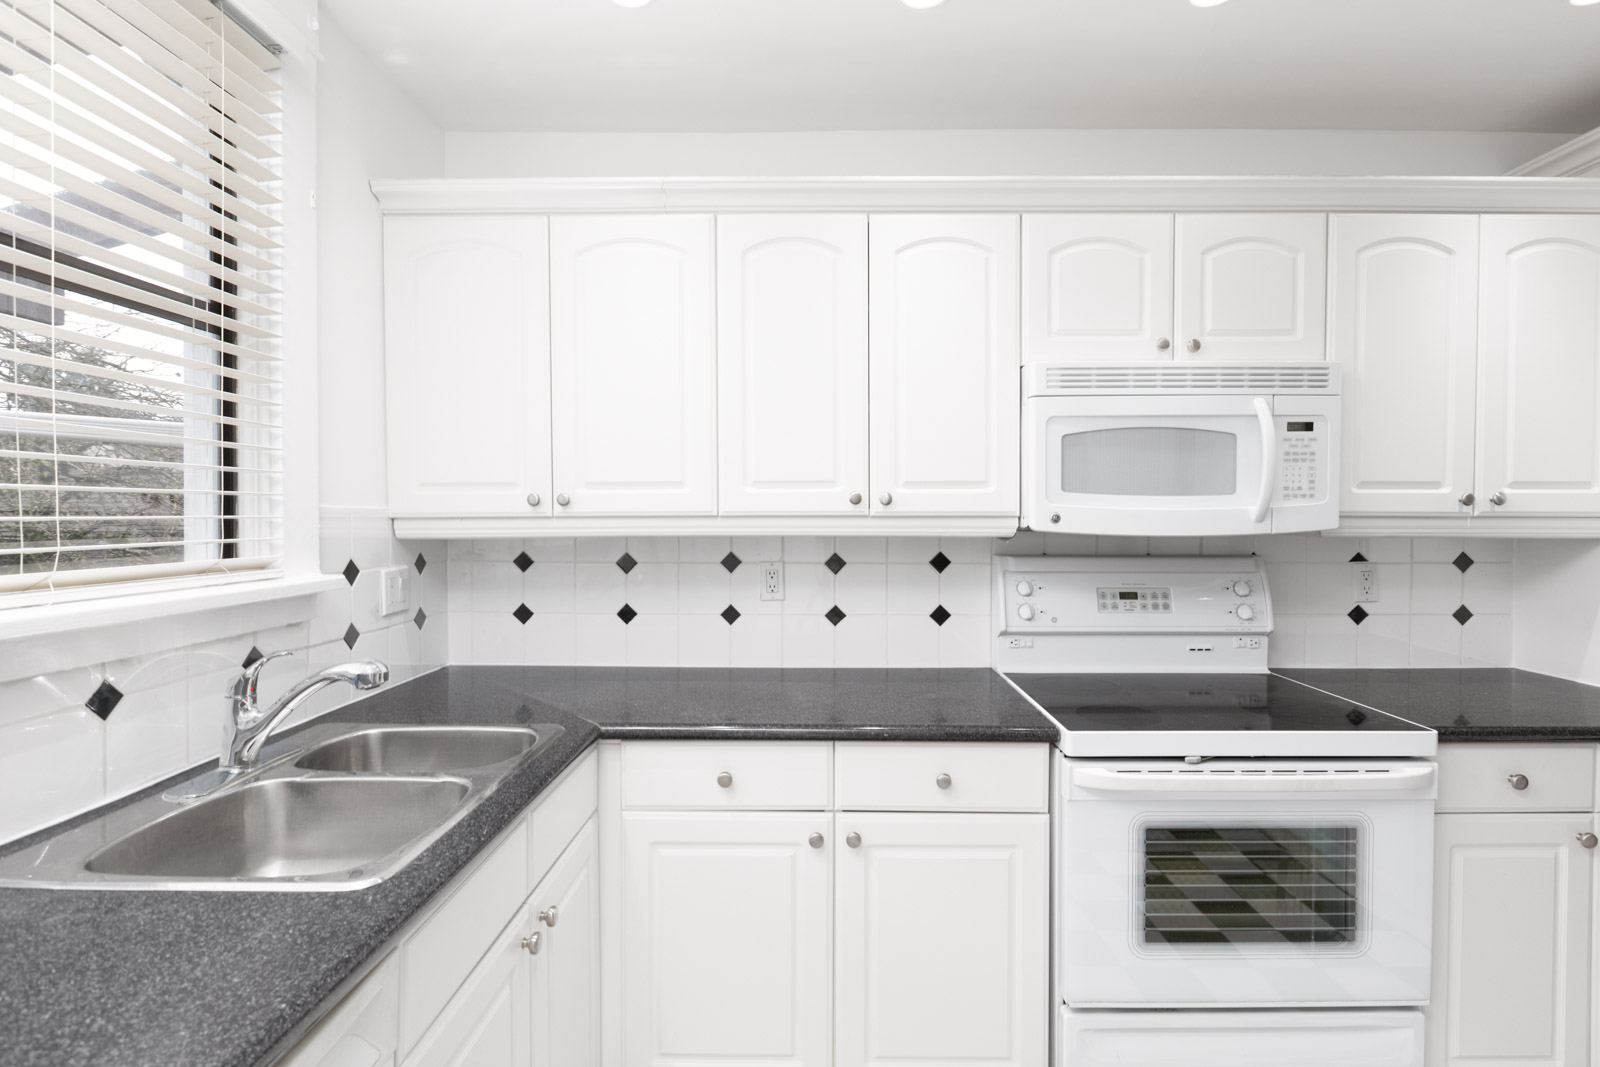 Kitchen with white cabinets with white oven and dark stovetop on left along with over the top white microwave